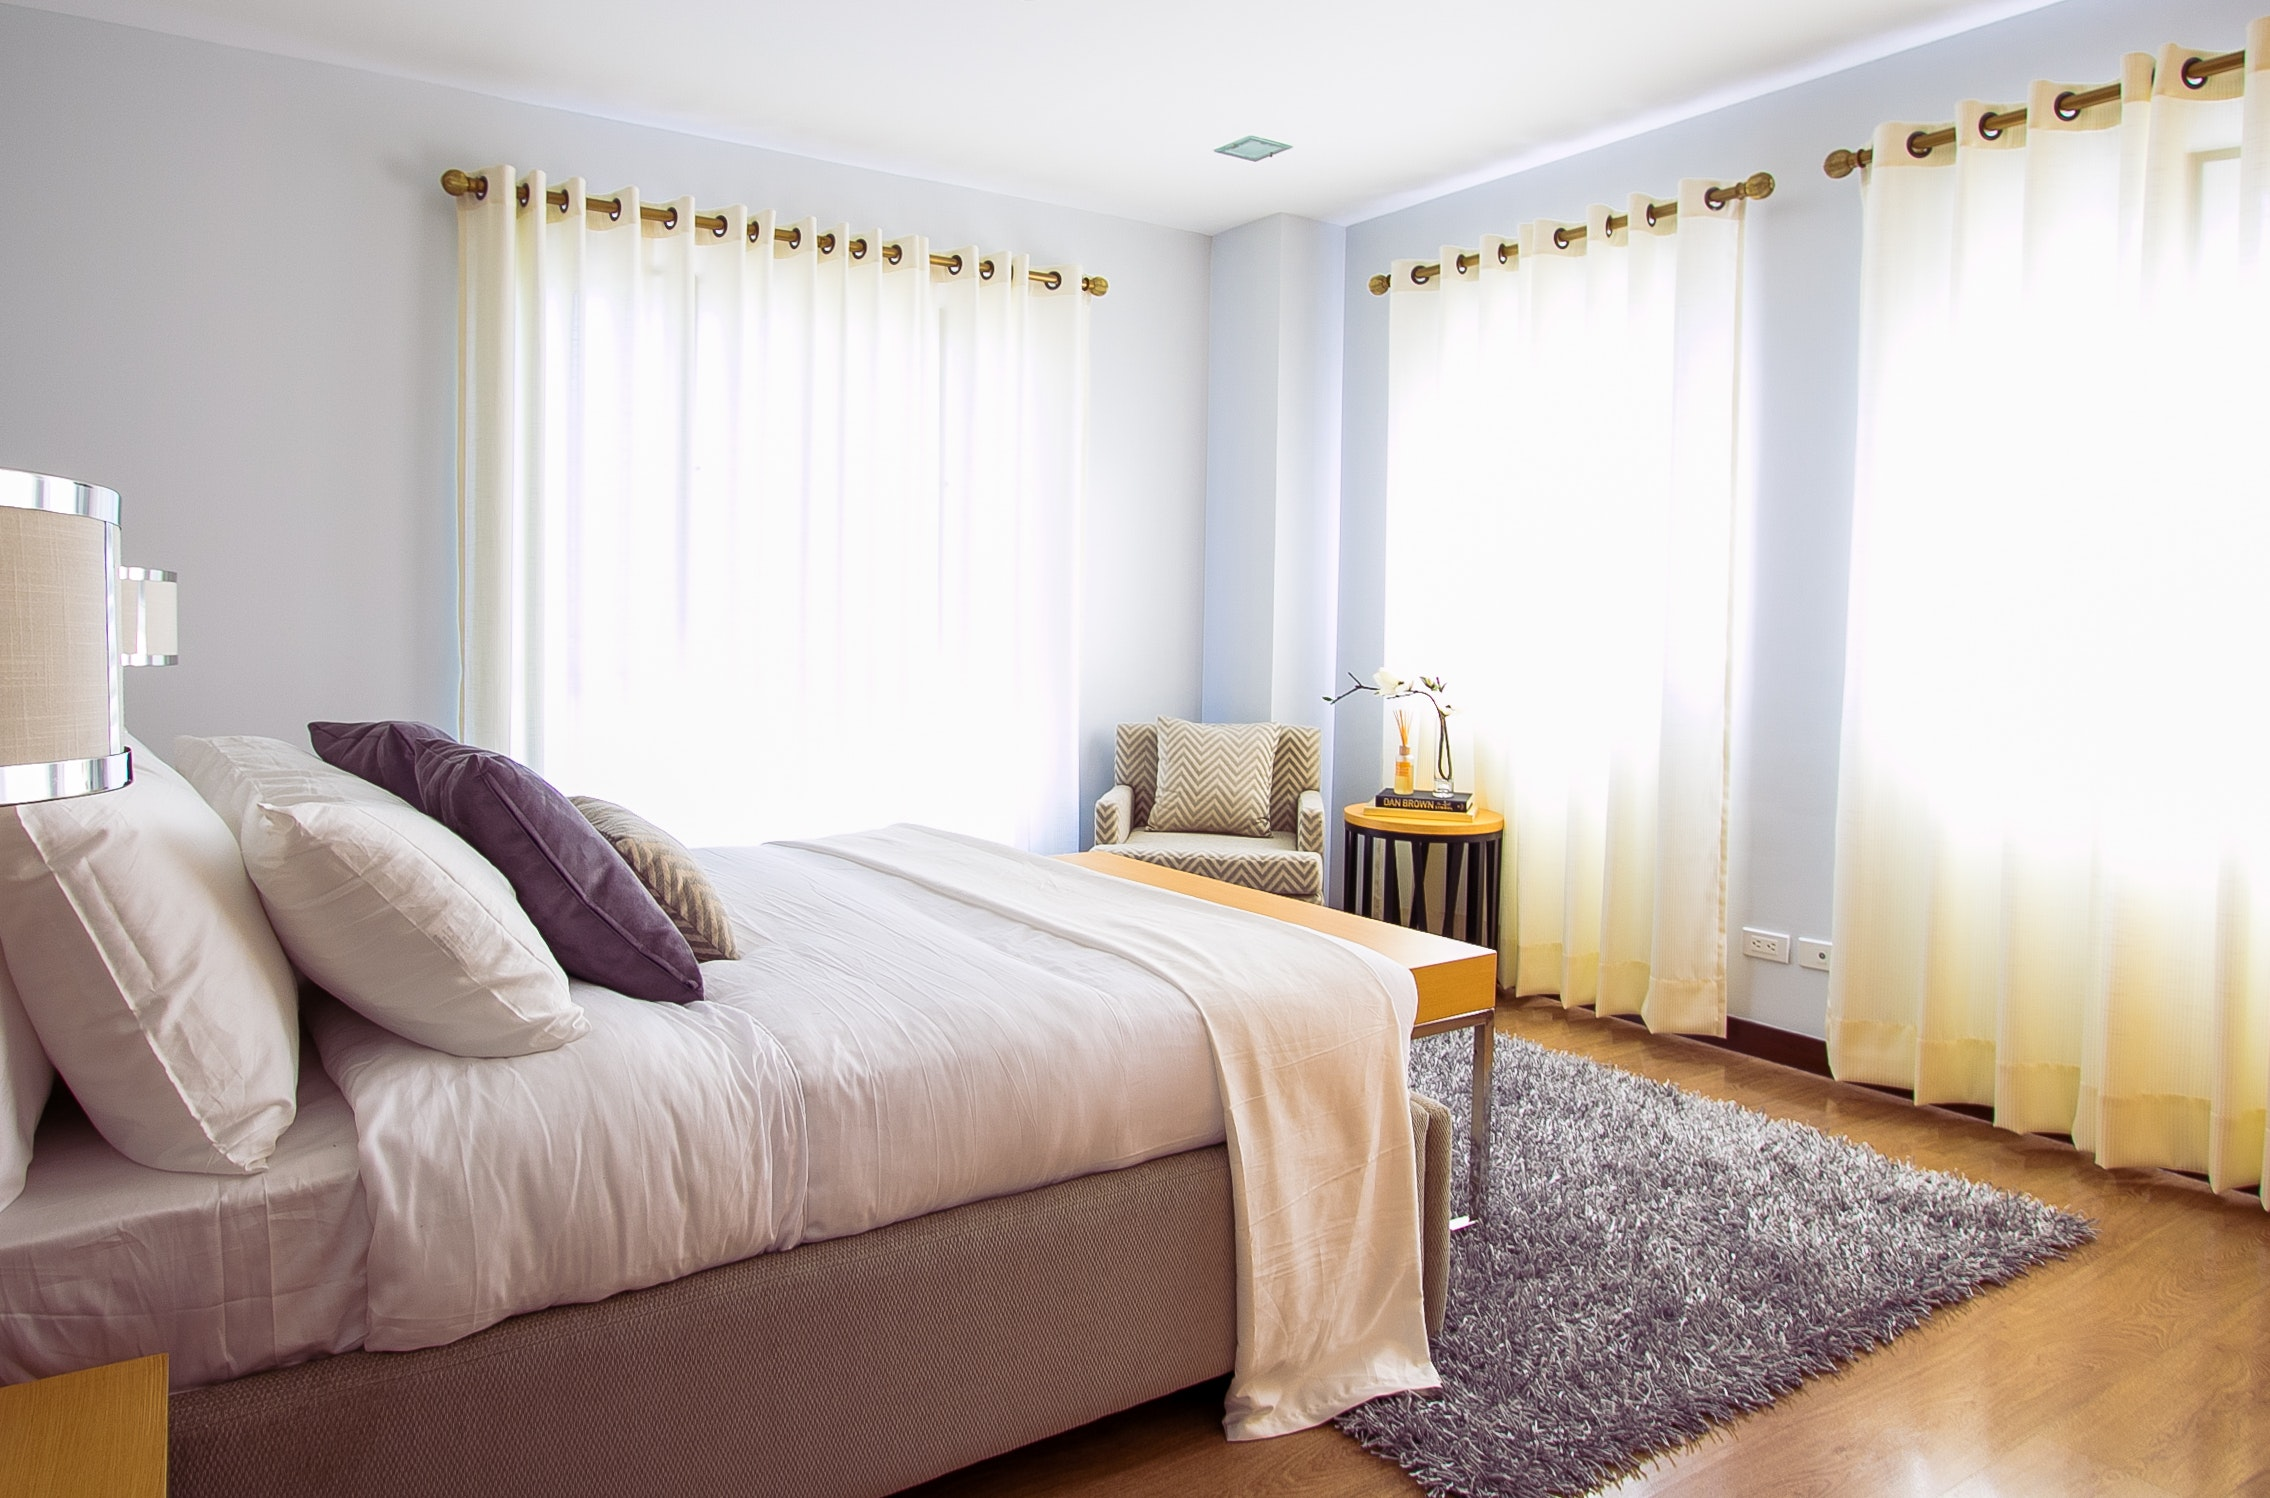 Keep your Home Cool this Summer Season with Window Coverings